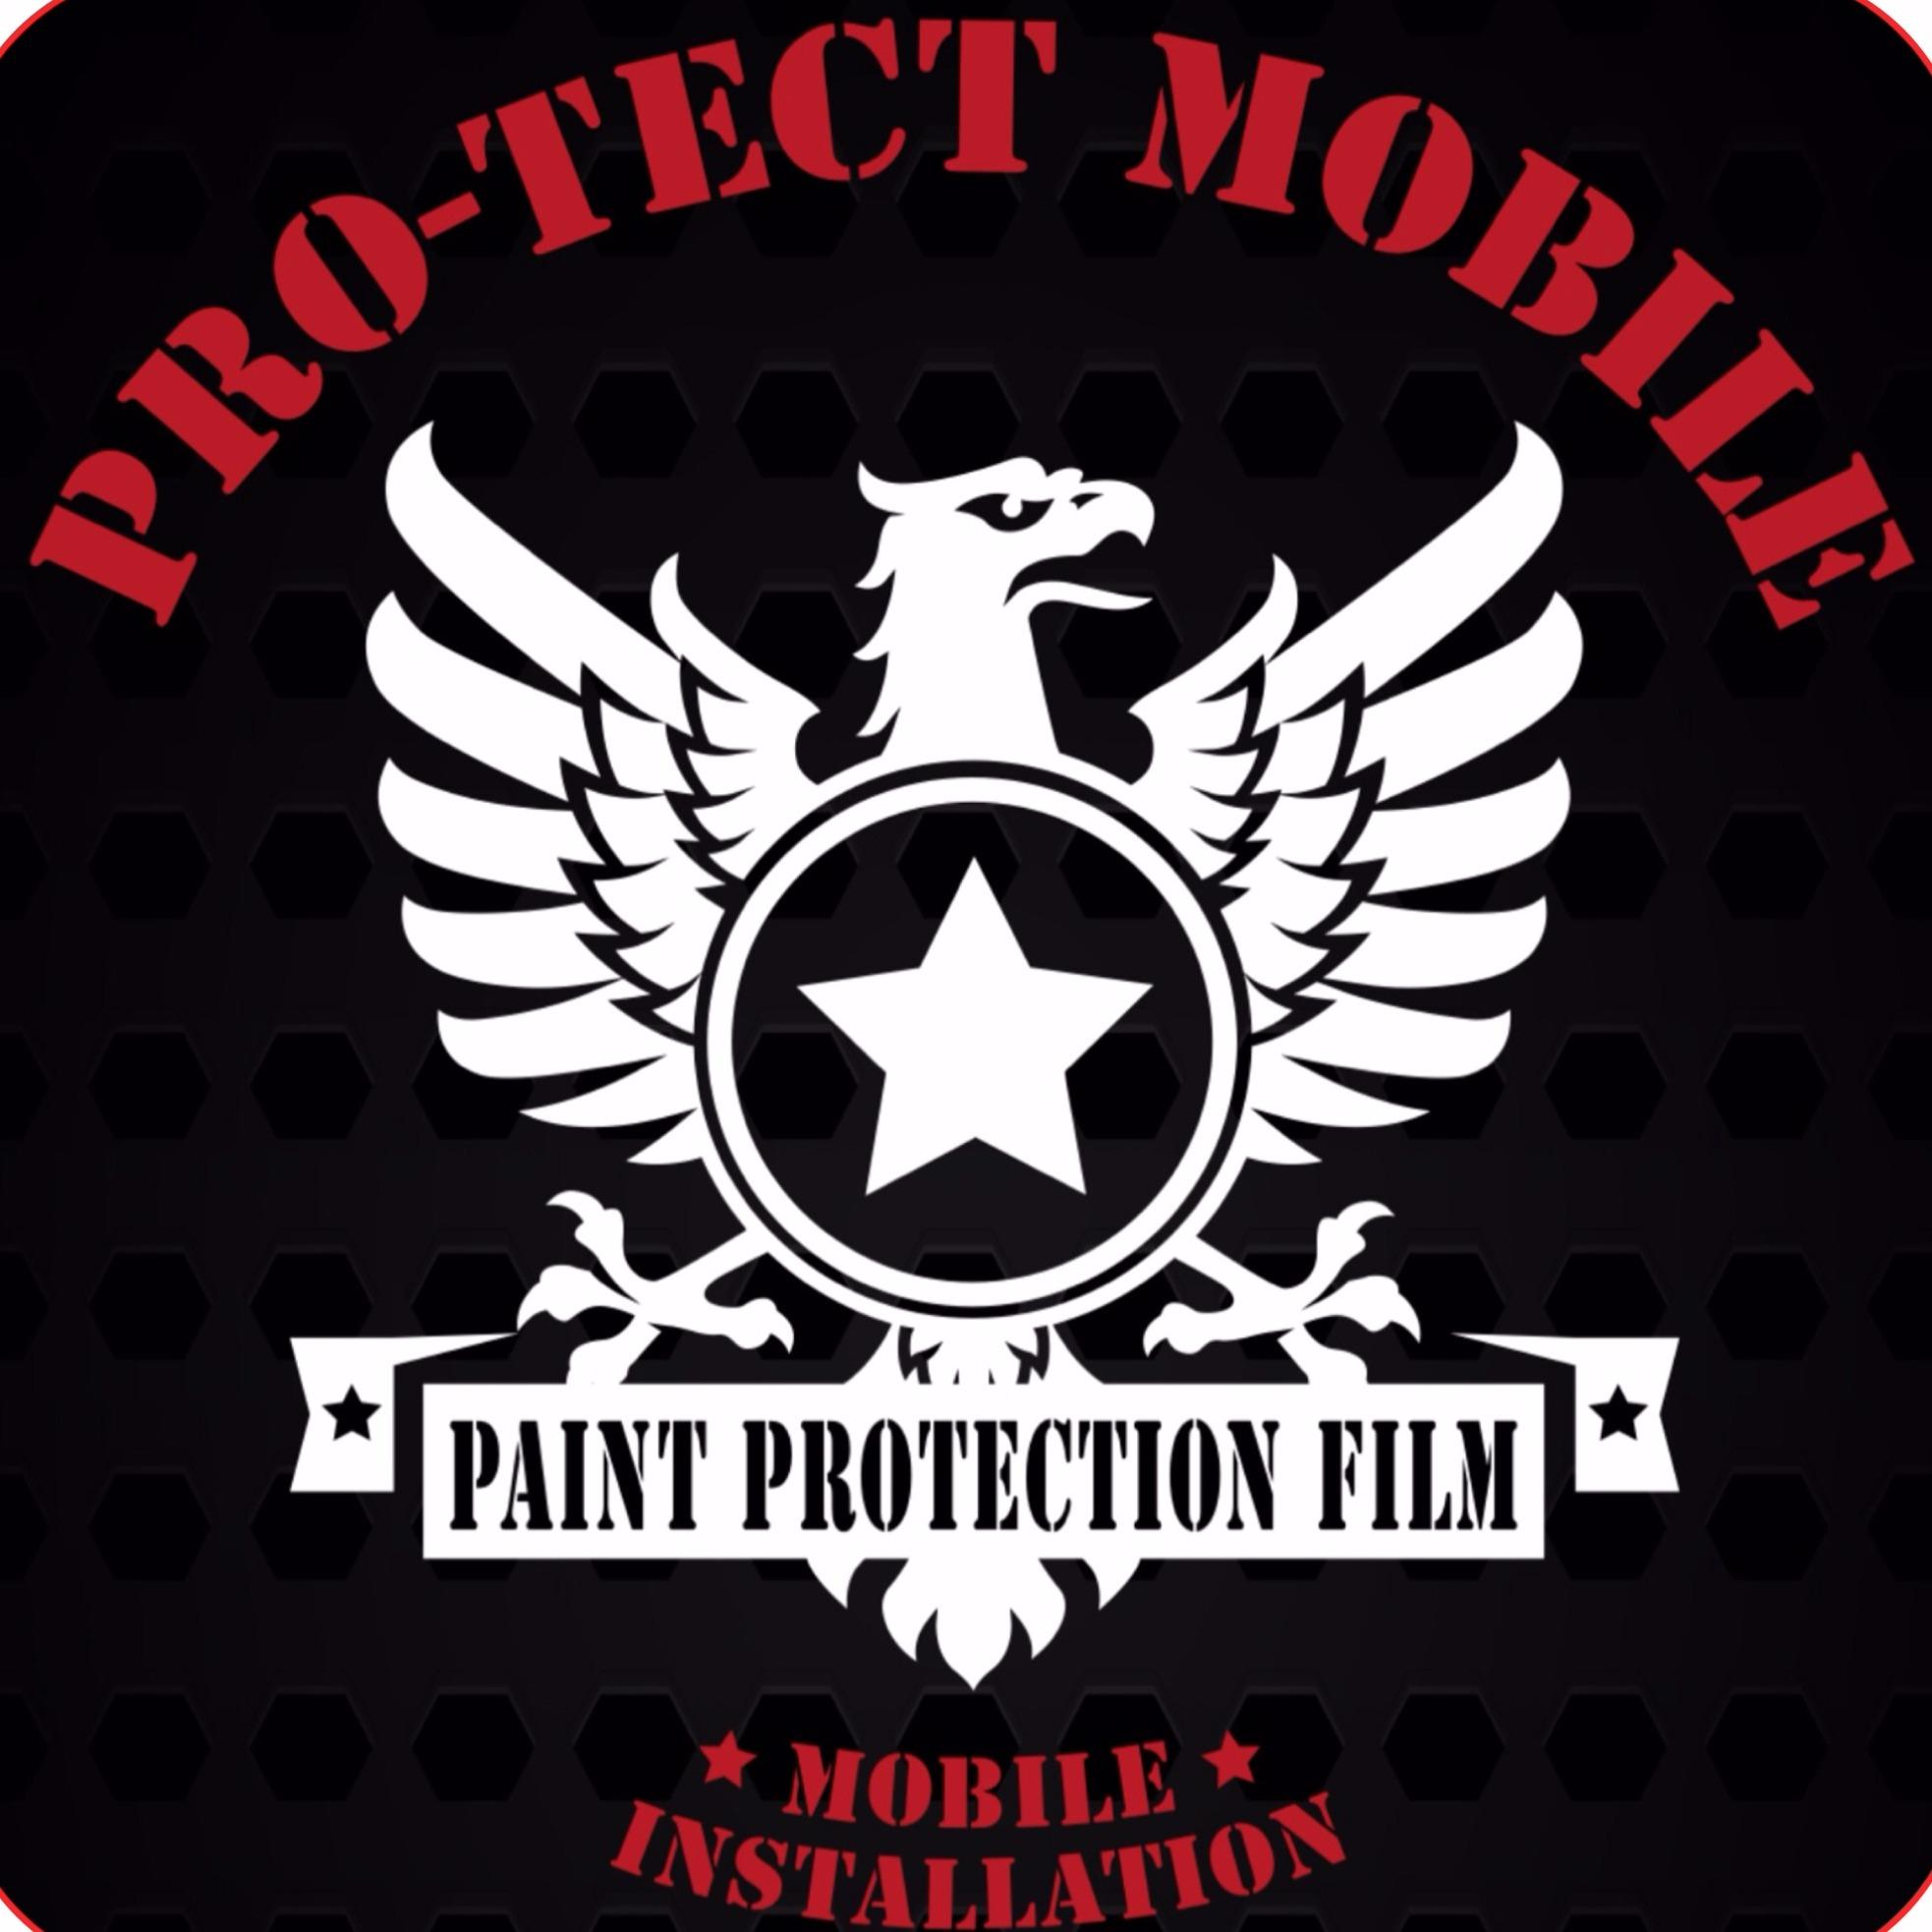 pro tect mobile coupons near me in lewisville 8coupons On paint protection film installers near me